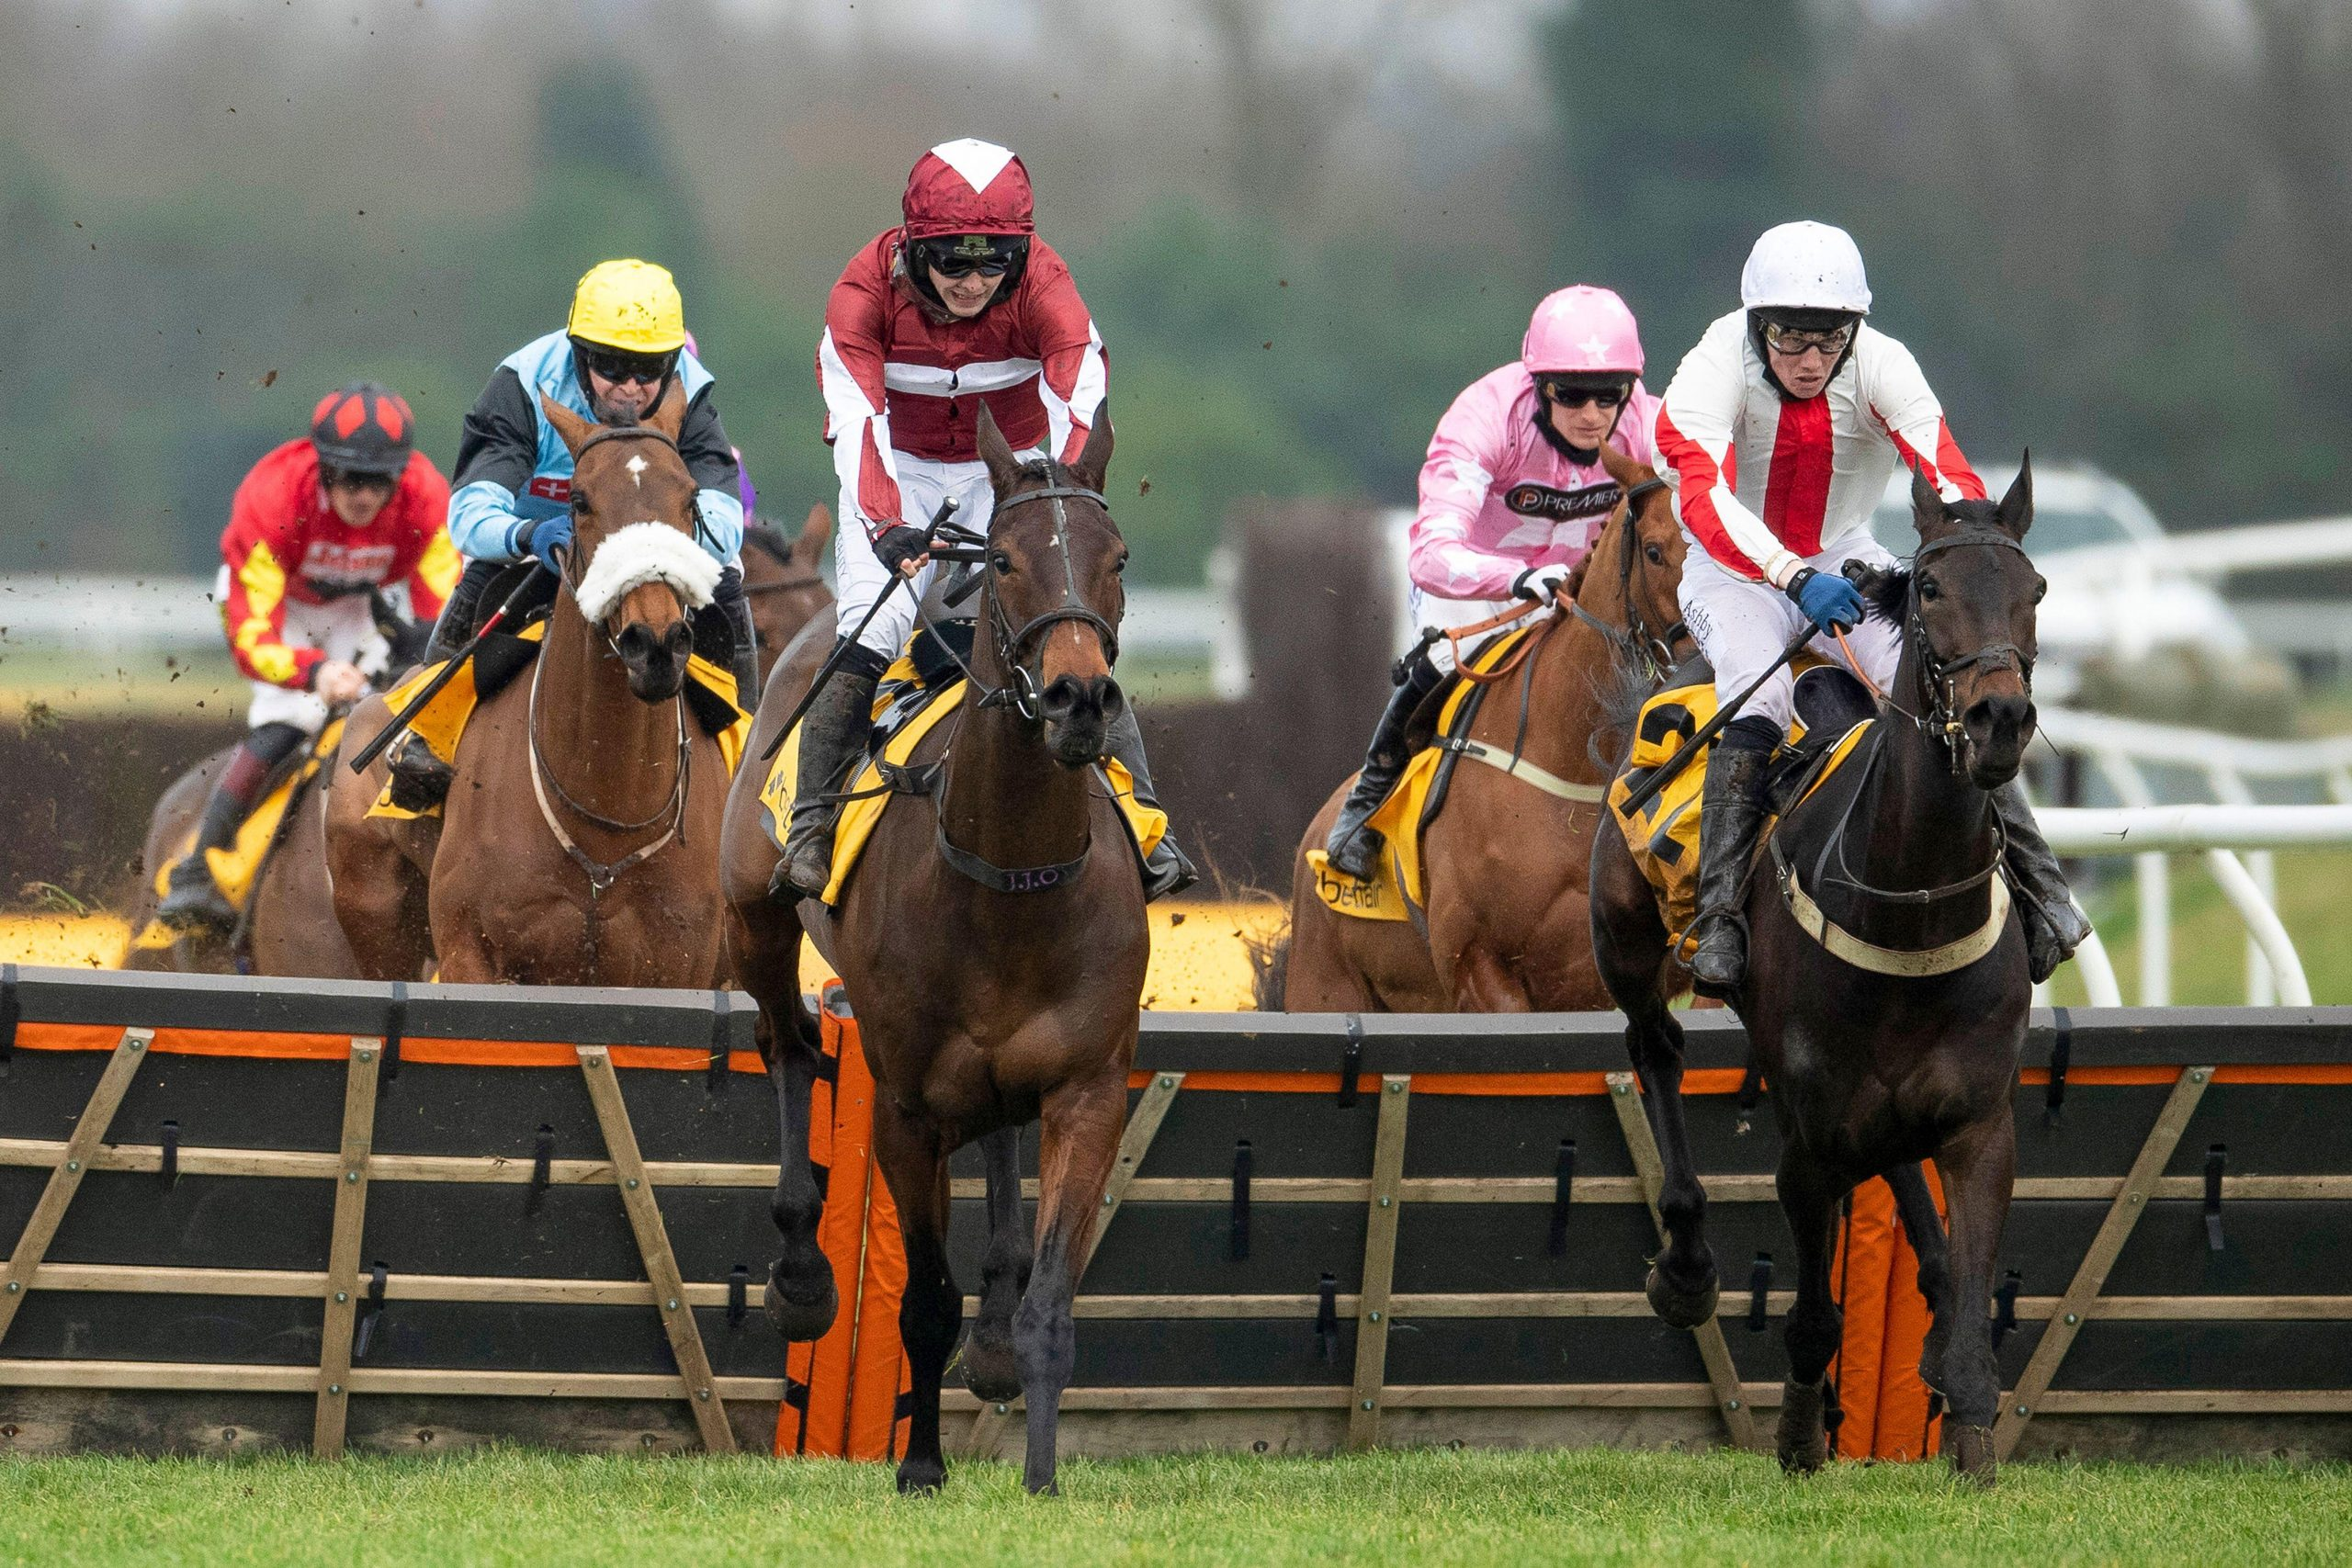 Soaring Glory jumping the last to win the Betfair Hurdle at Newbury Racecourse in February 2021